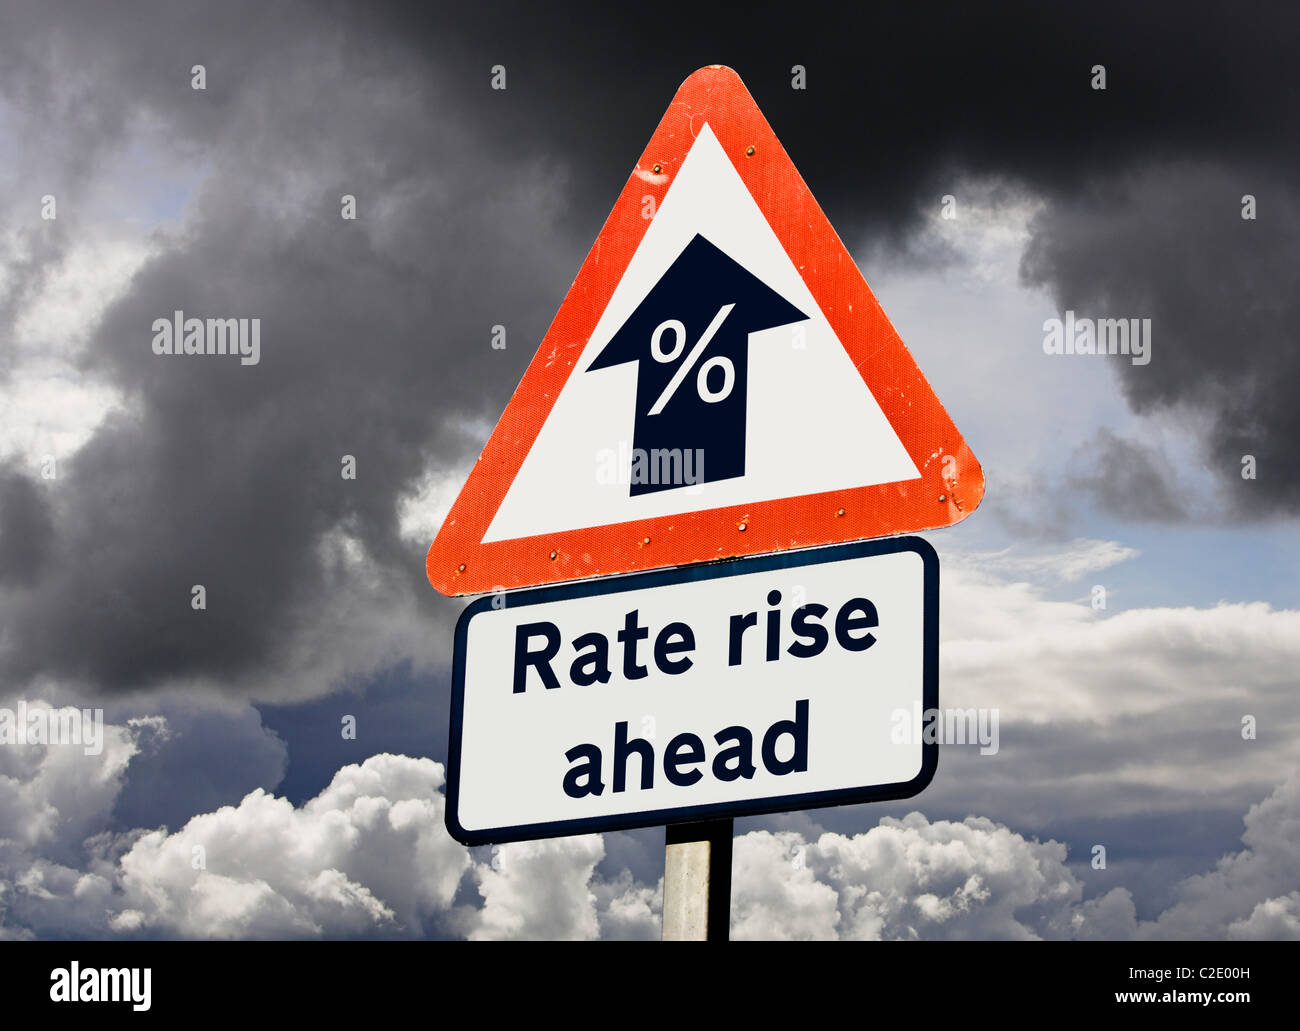 Financial concept warning of interest rate rise ahead - future sign, England UK - Stock Image